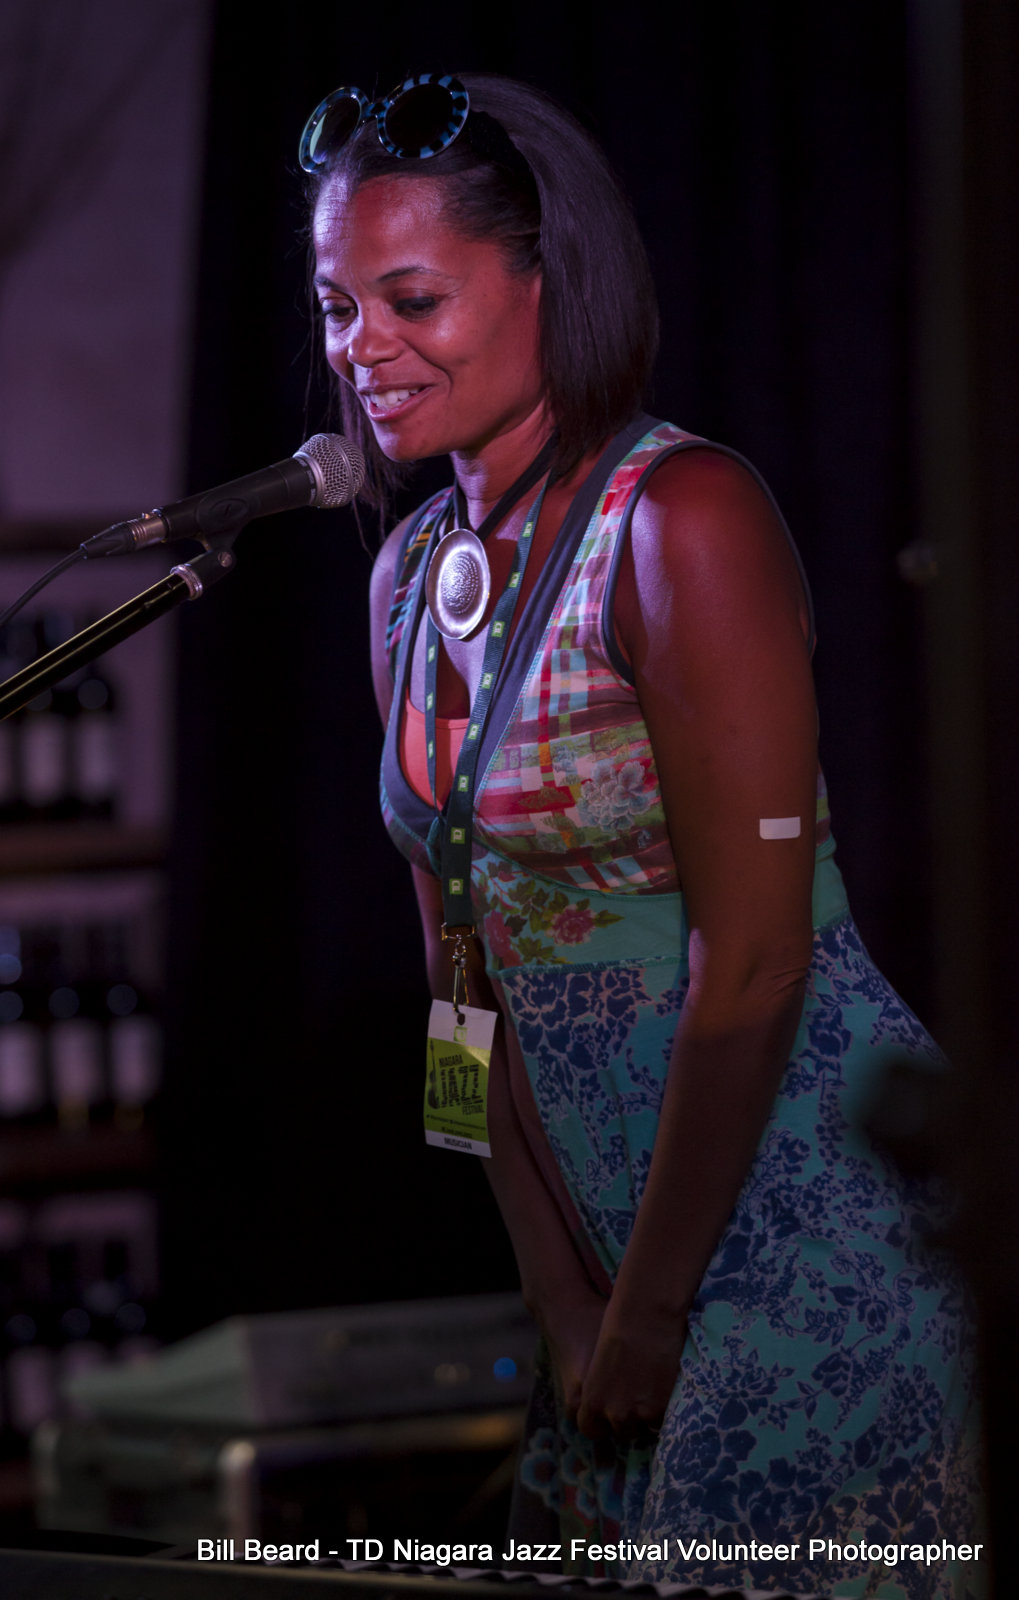 SOUL JAZZ in the VINEYARD - The Hare Wine Co. - Juliet Dunn (Executive Director with opening remarks) Saturday, July 29th, 2017. Photo: Bill Beard